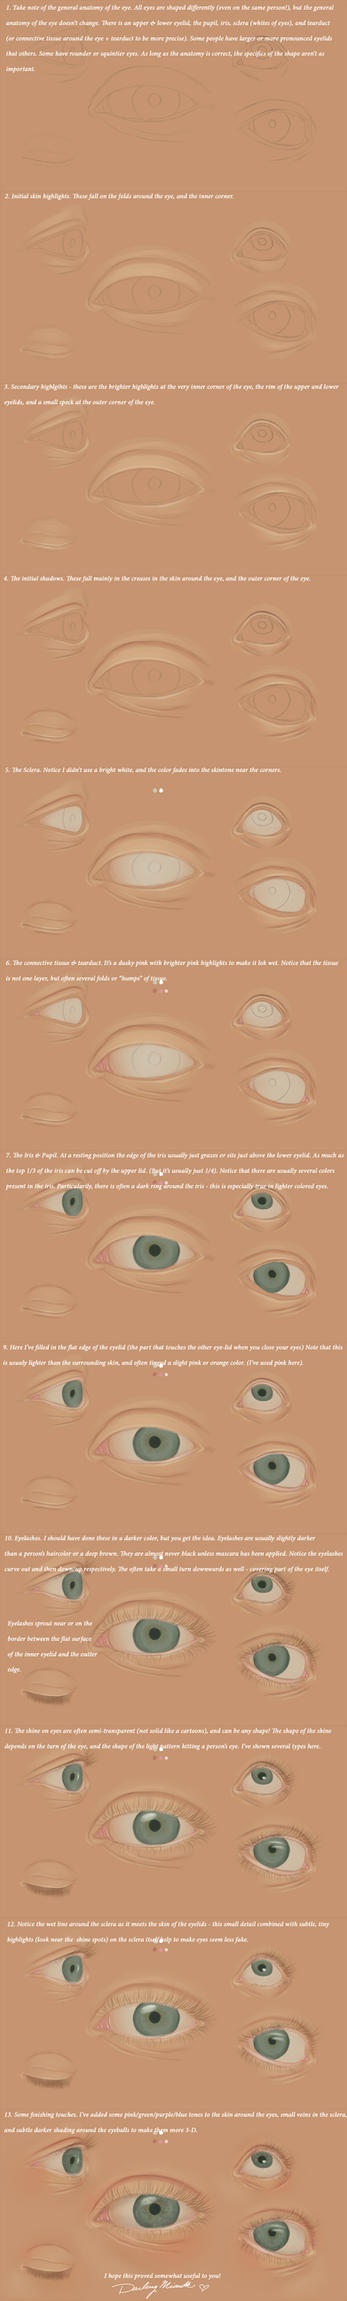 Tutorial - Painting The Human Eye by DarlingMionette